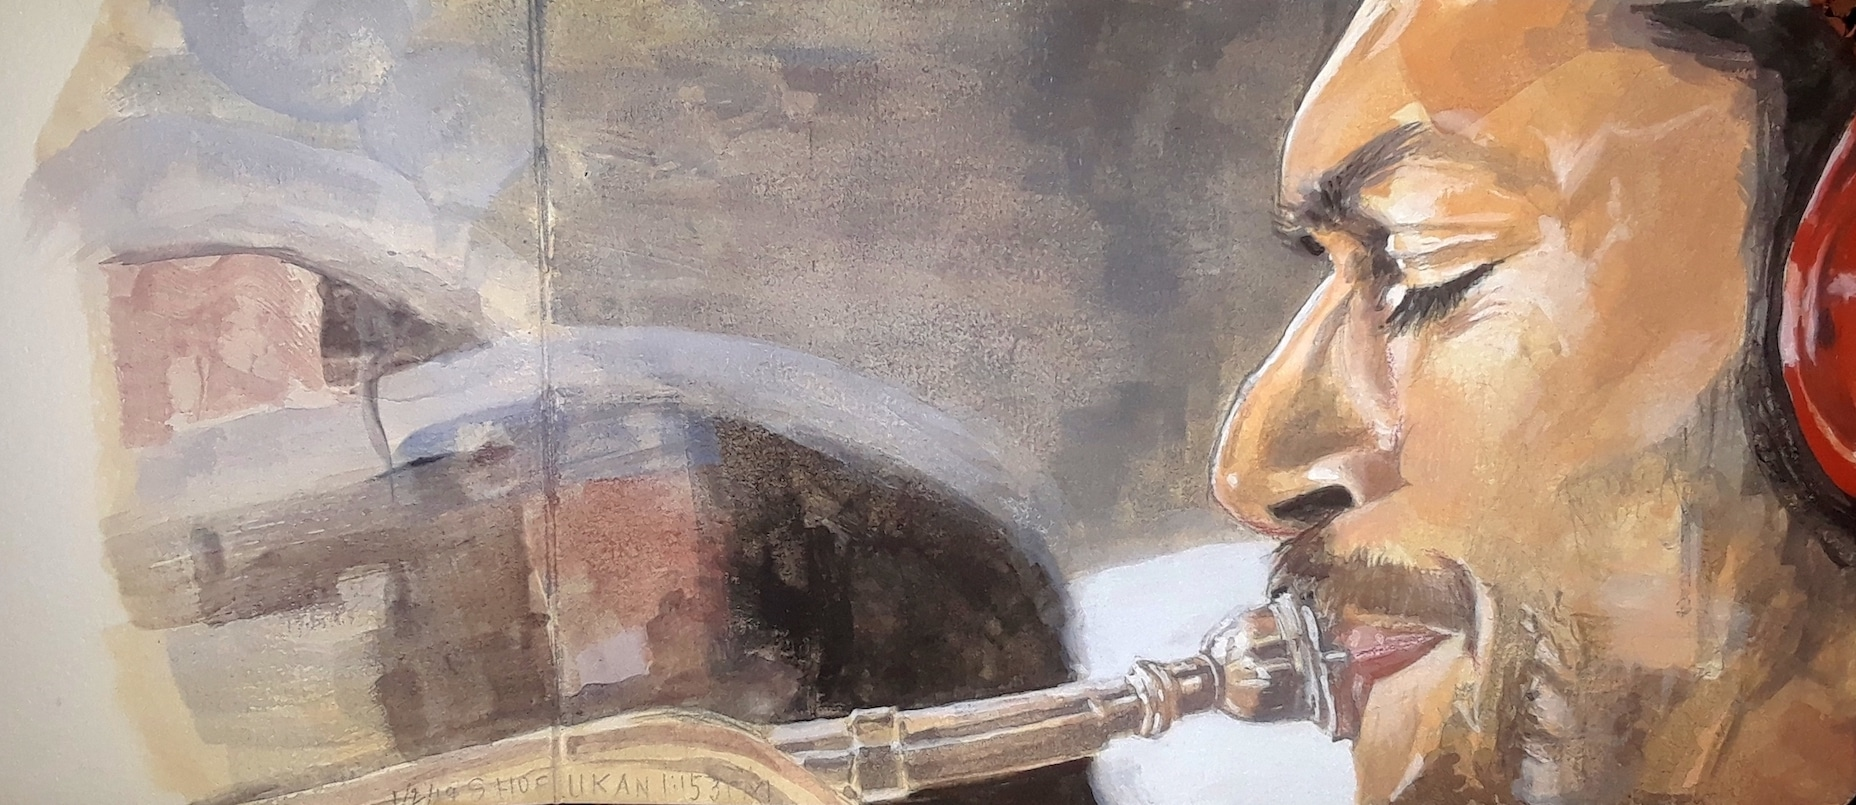 Painting with a closeup profile view of a man's head. He's playing a brass instrument.